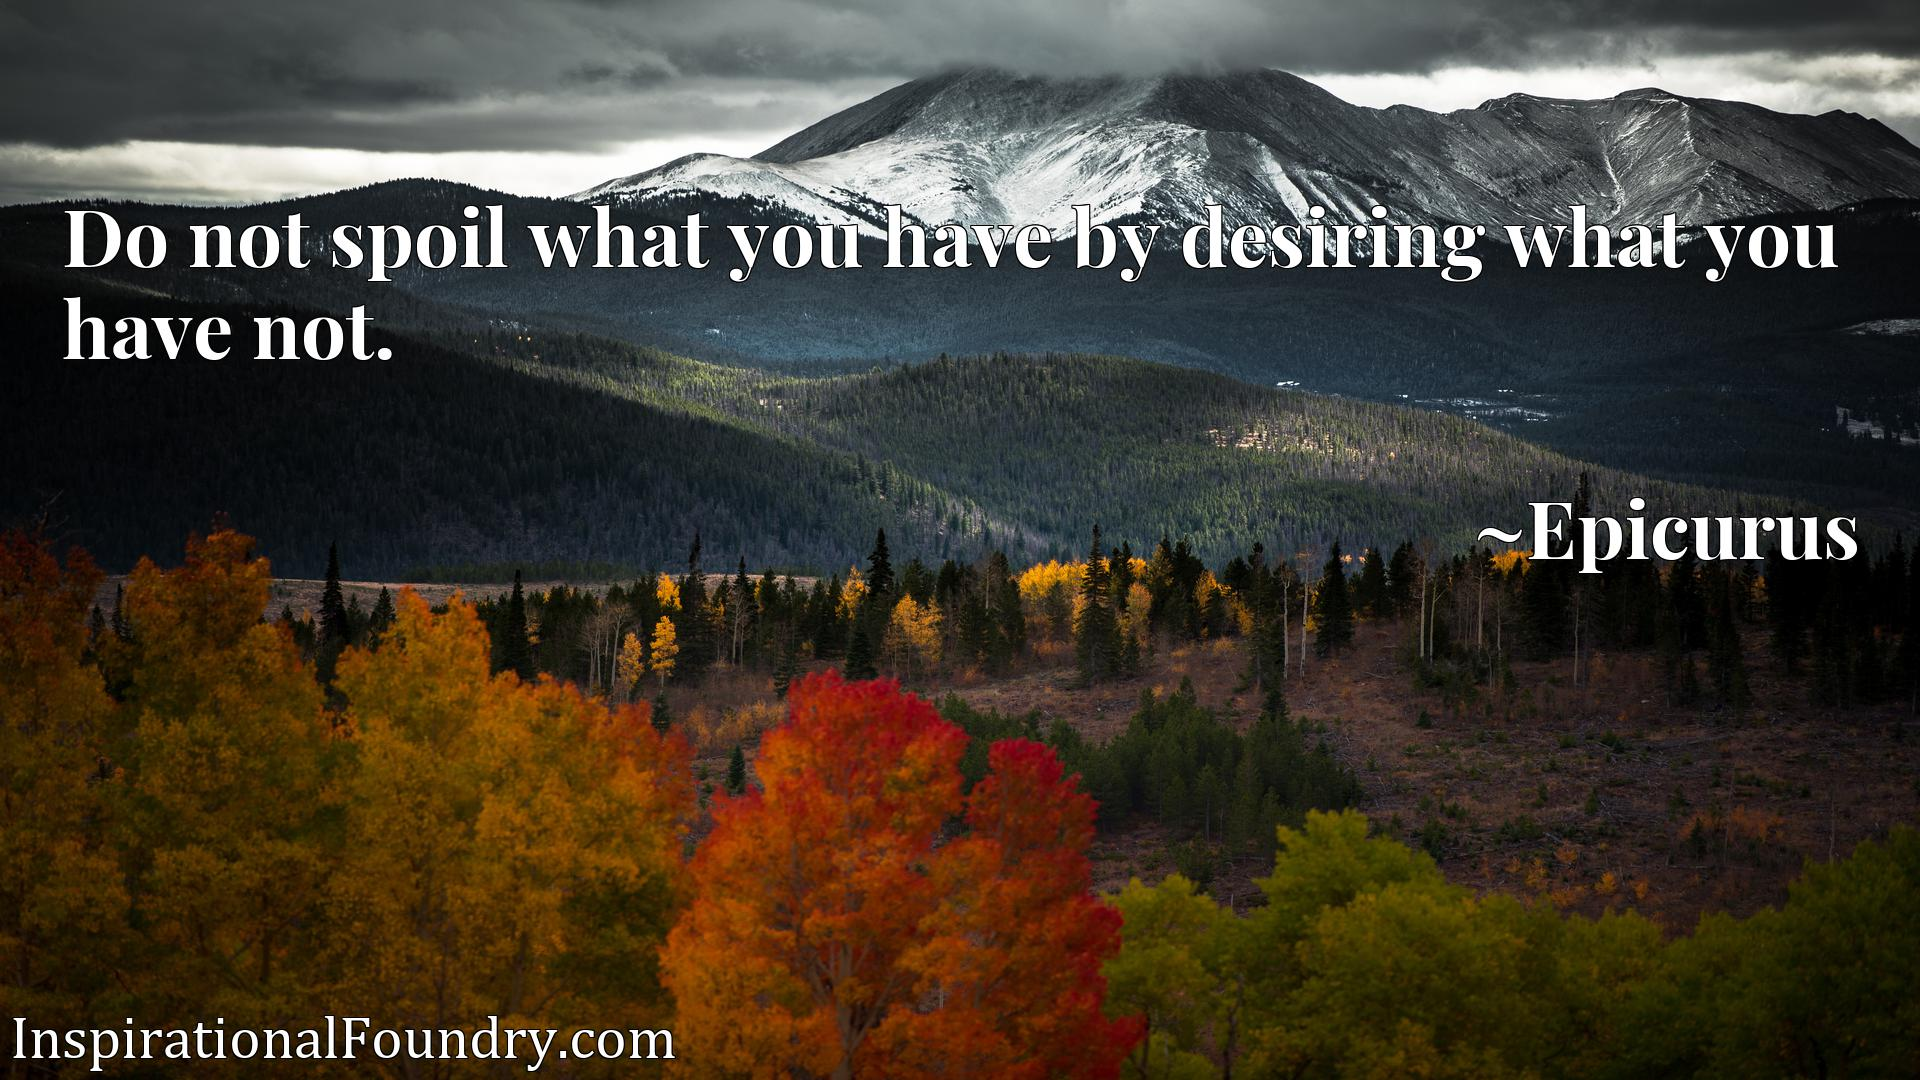 Do not spoil what you have by desiring what you have not.